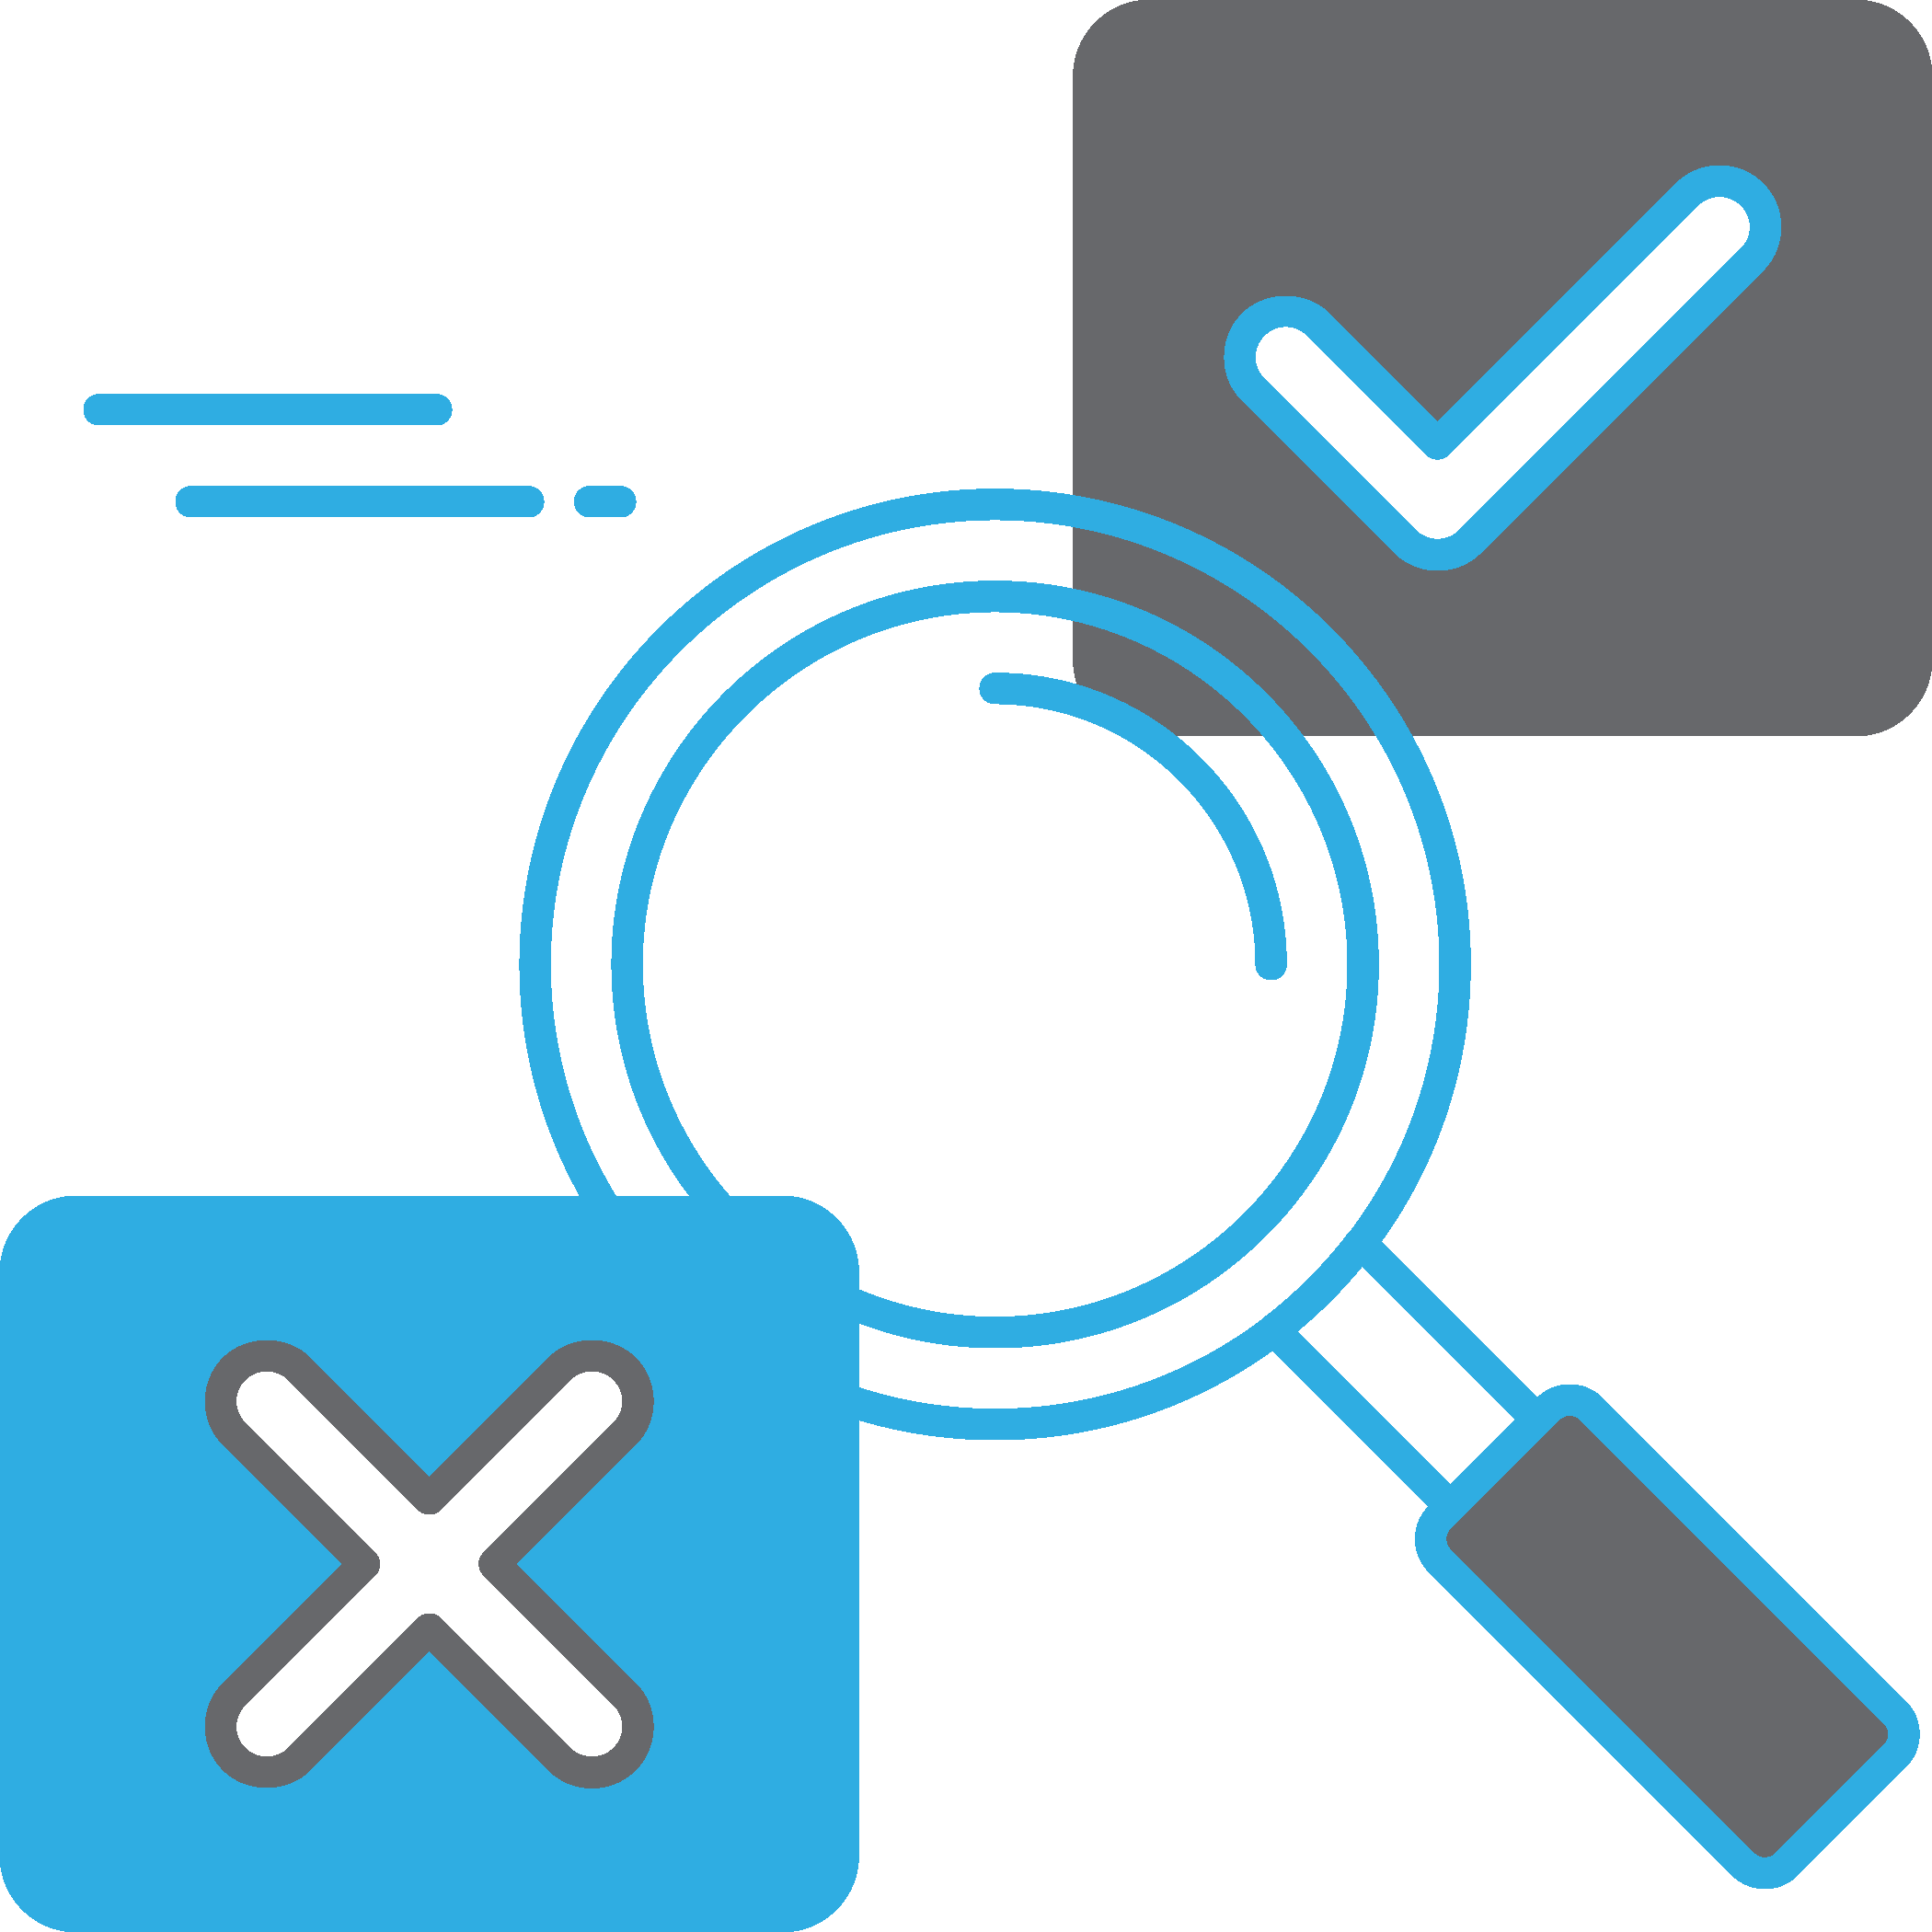 magnifying glass illustrating investment research